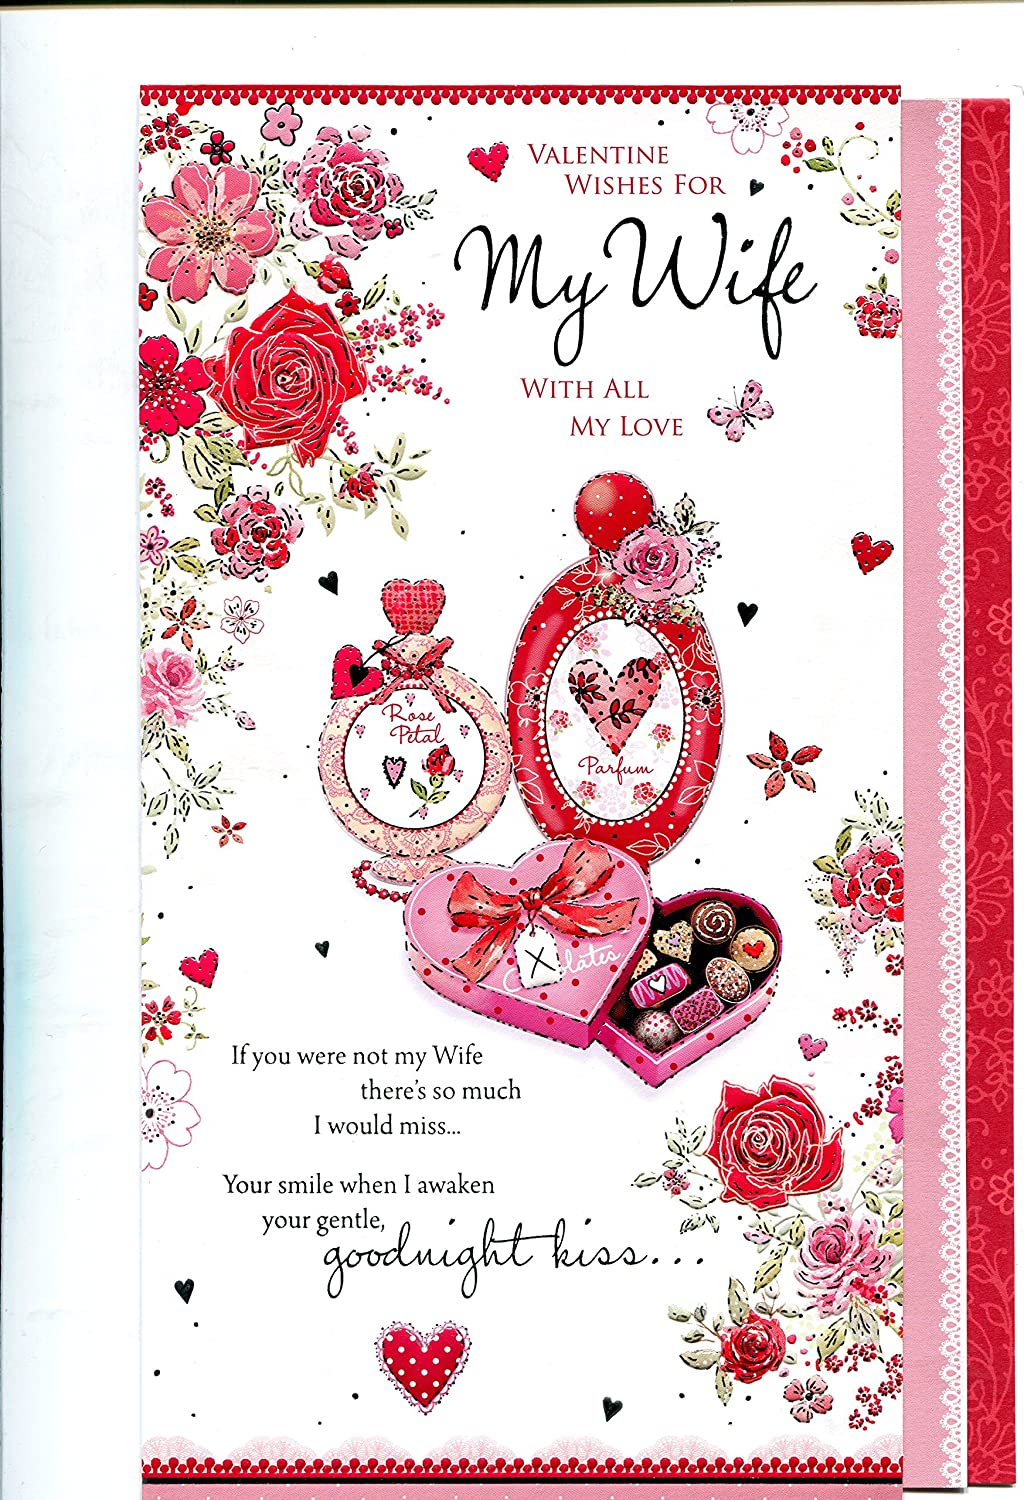 Valentines Day Card Valentines Wishes For My Wife With All My Love